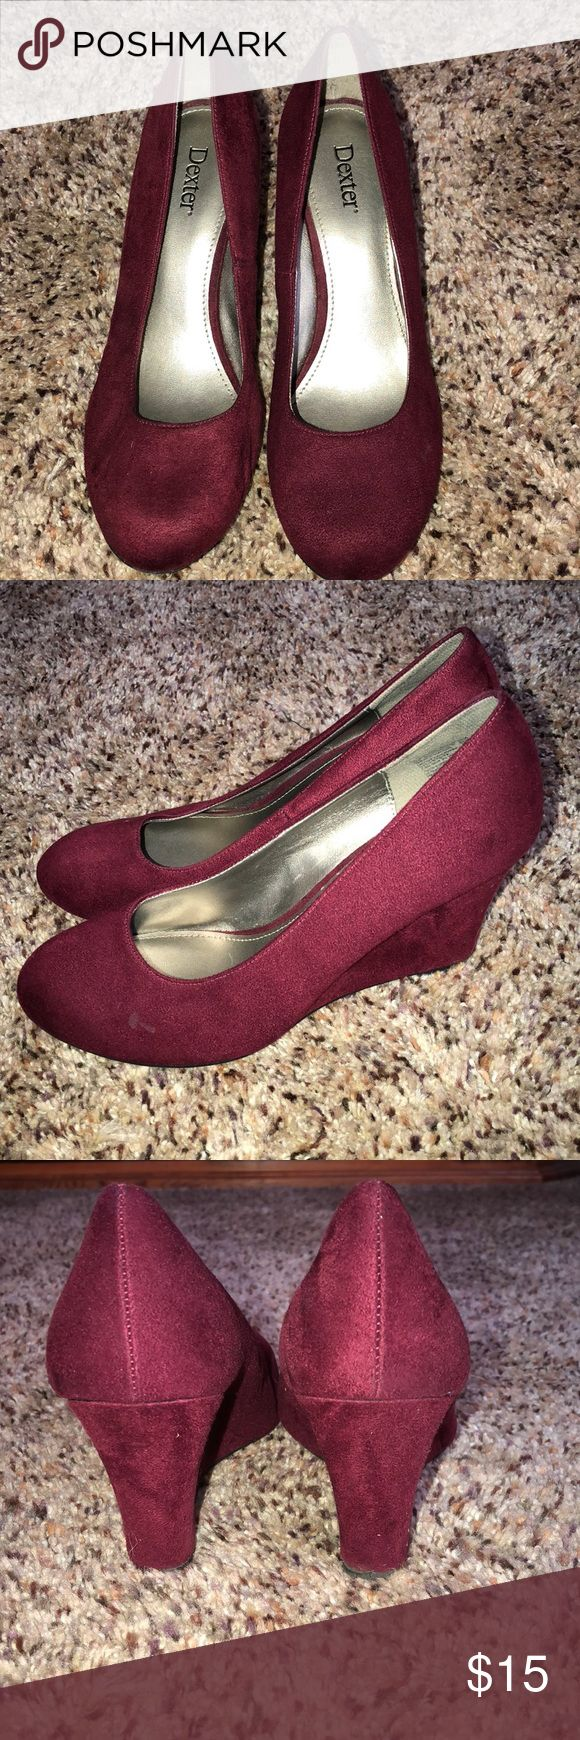 Red wedges Great condition red suede wedges Shoes Wedges